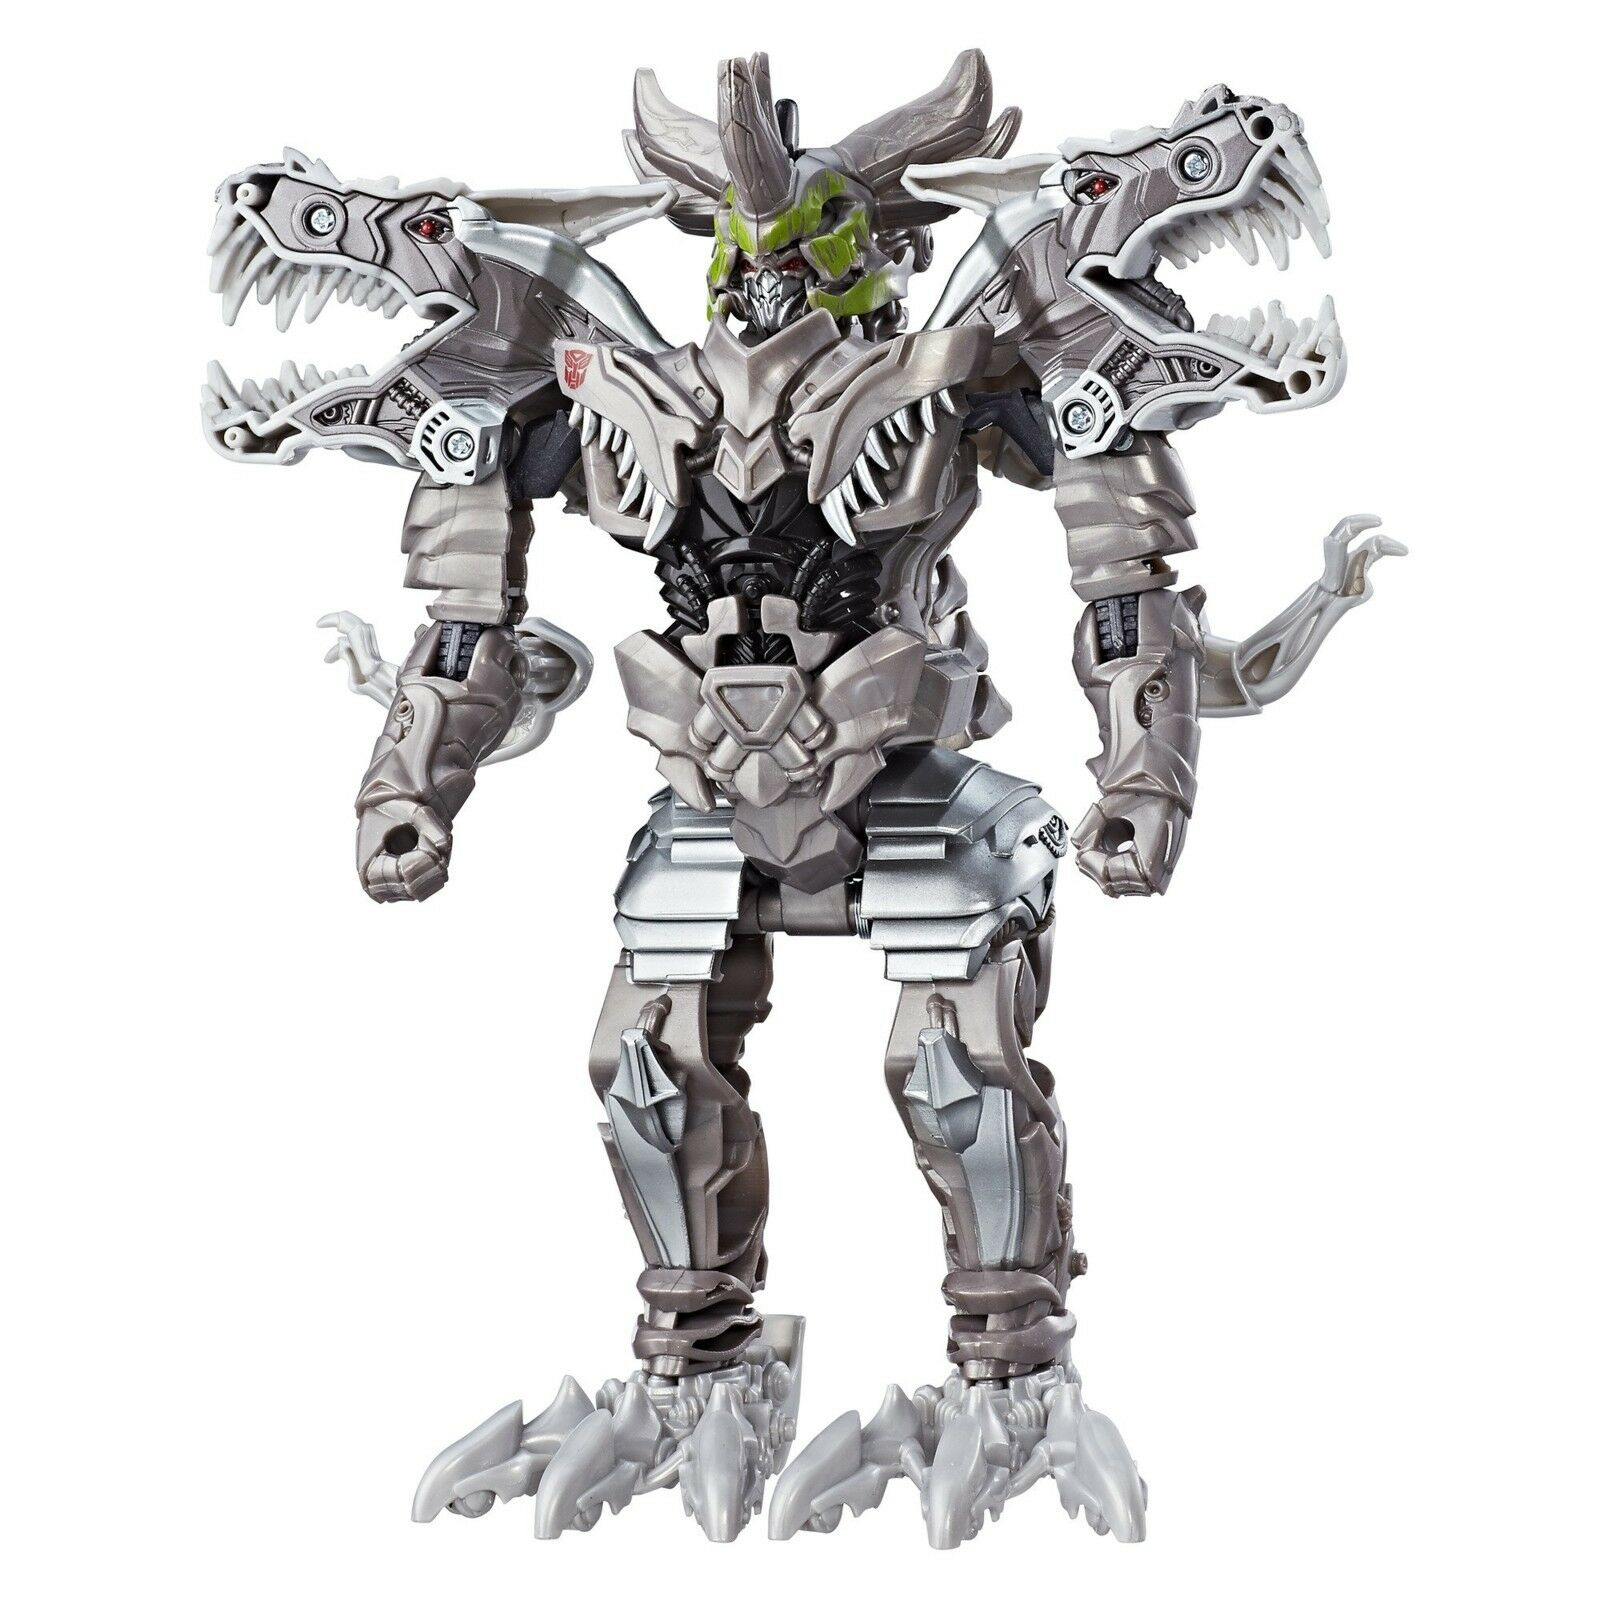 Transformers The Last Knight Action Figures Robot Toy Christmas Gift For Boy New